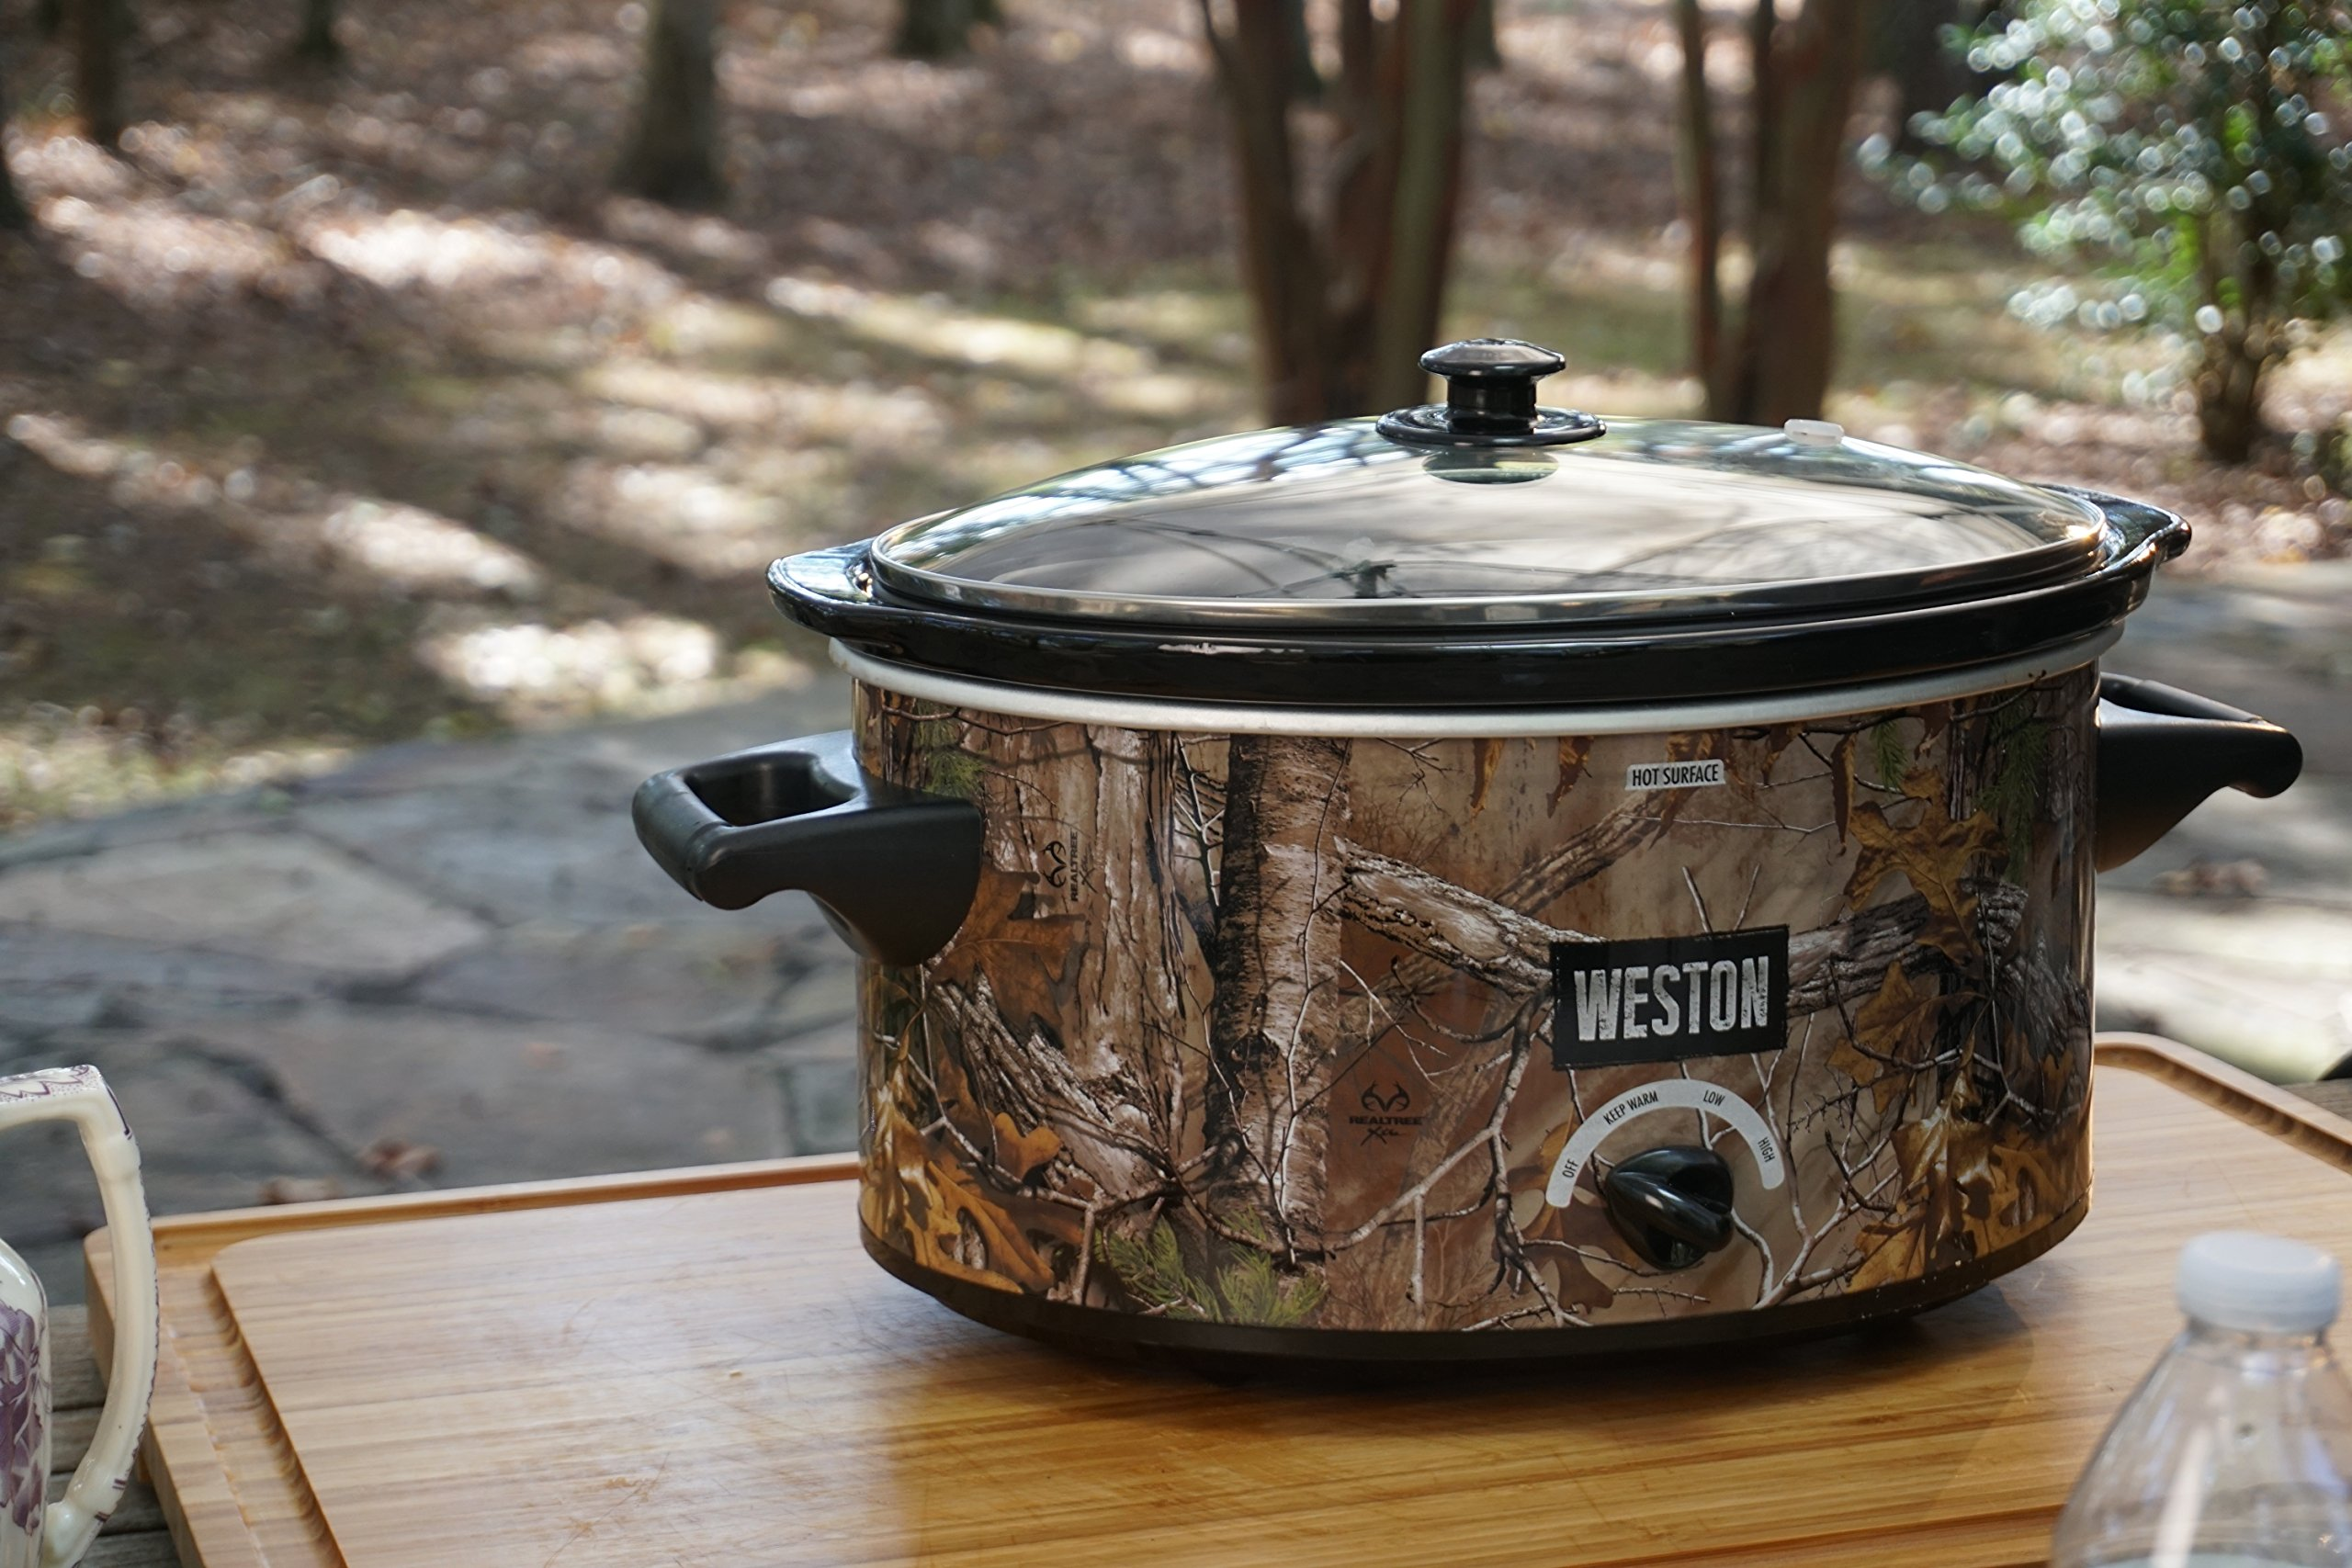 Weston 03-2100-RT Slow Cooker, 5 Quart, Green by Weston (Image #2)